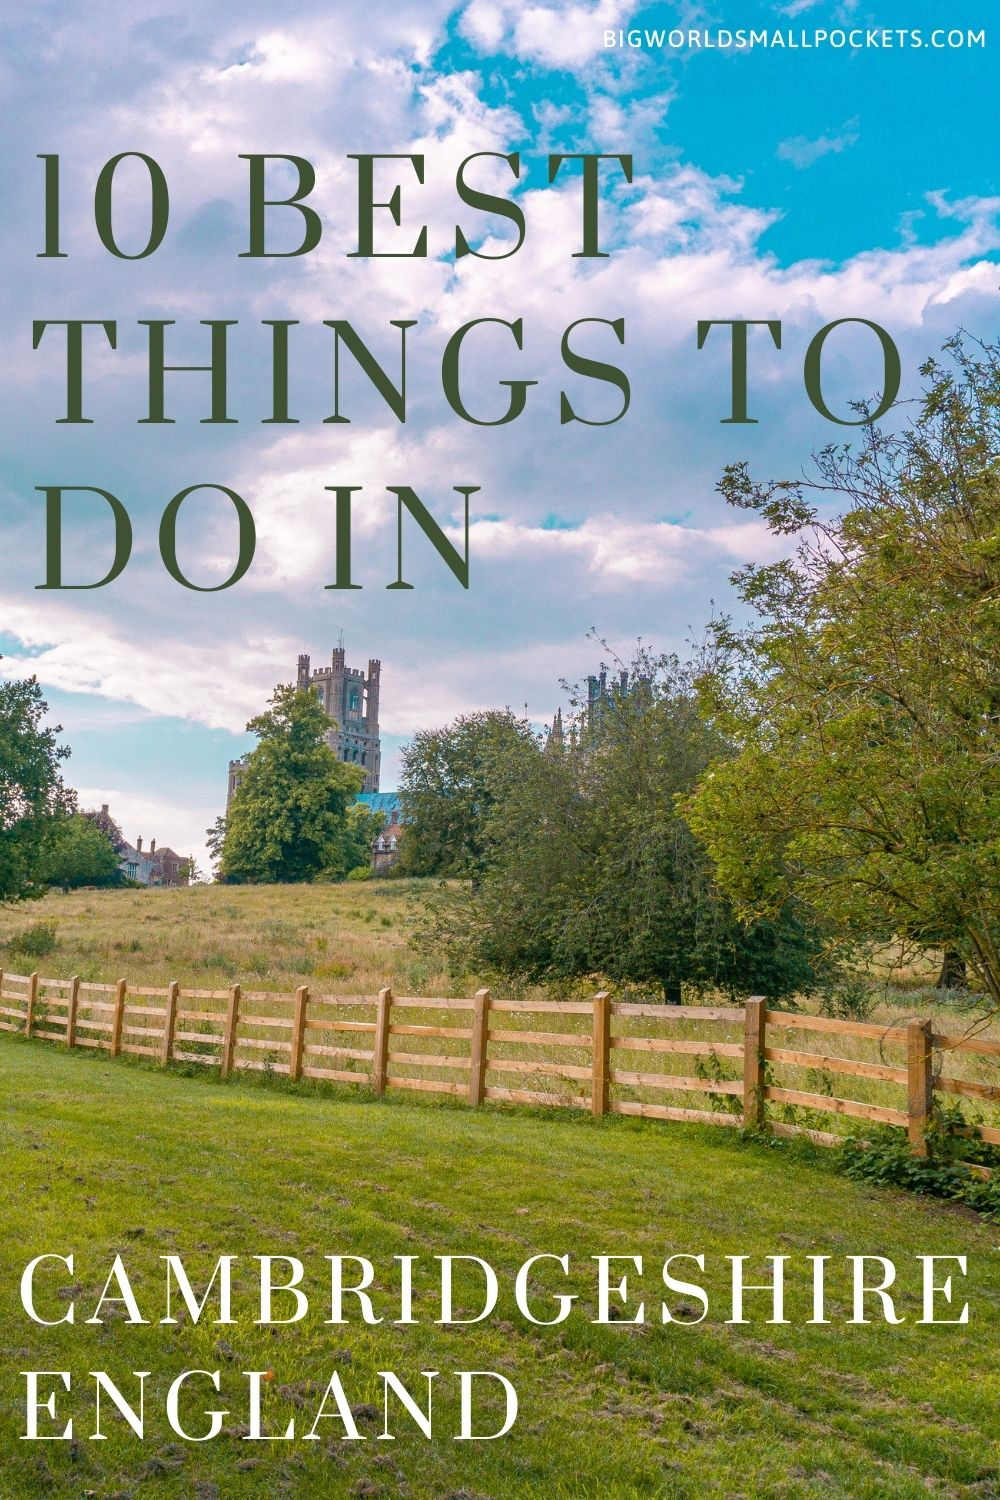 The 10 Best Things to Do in Cambridgeshire, England